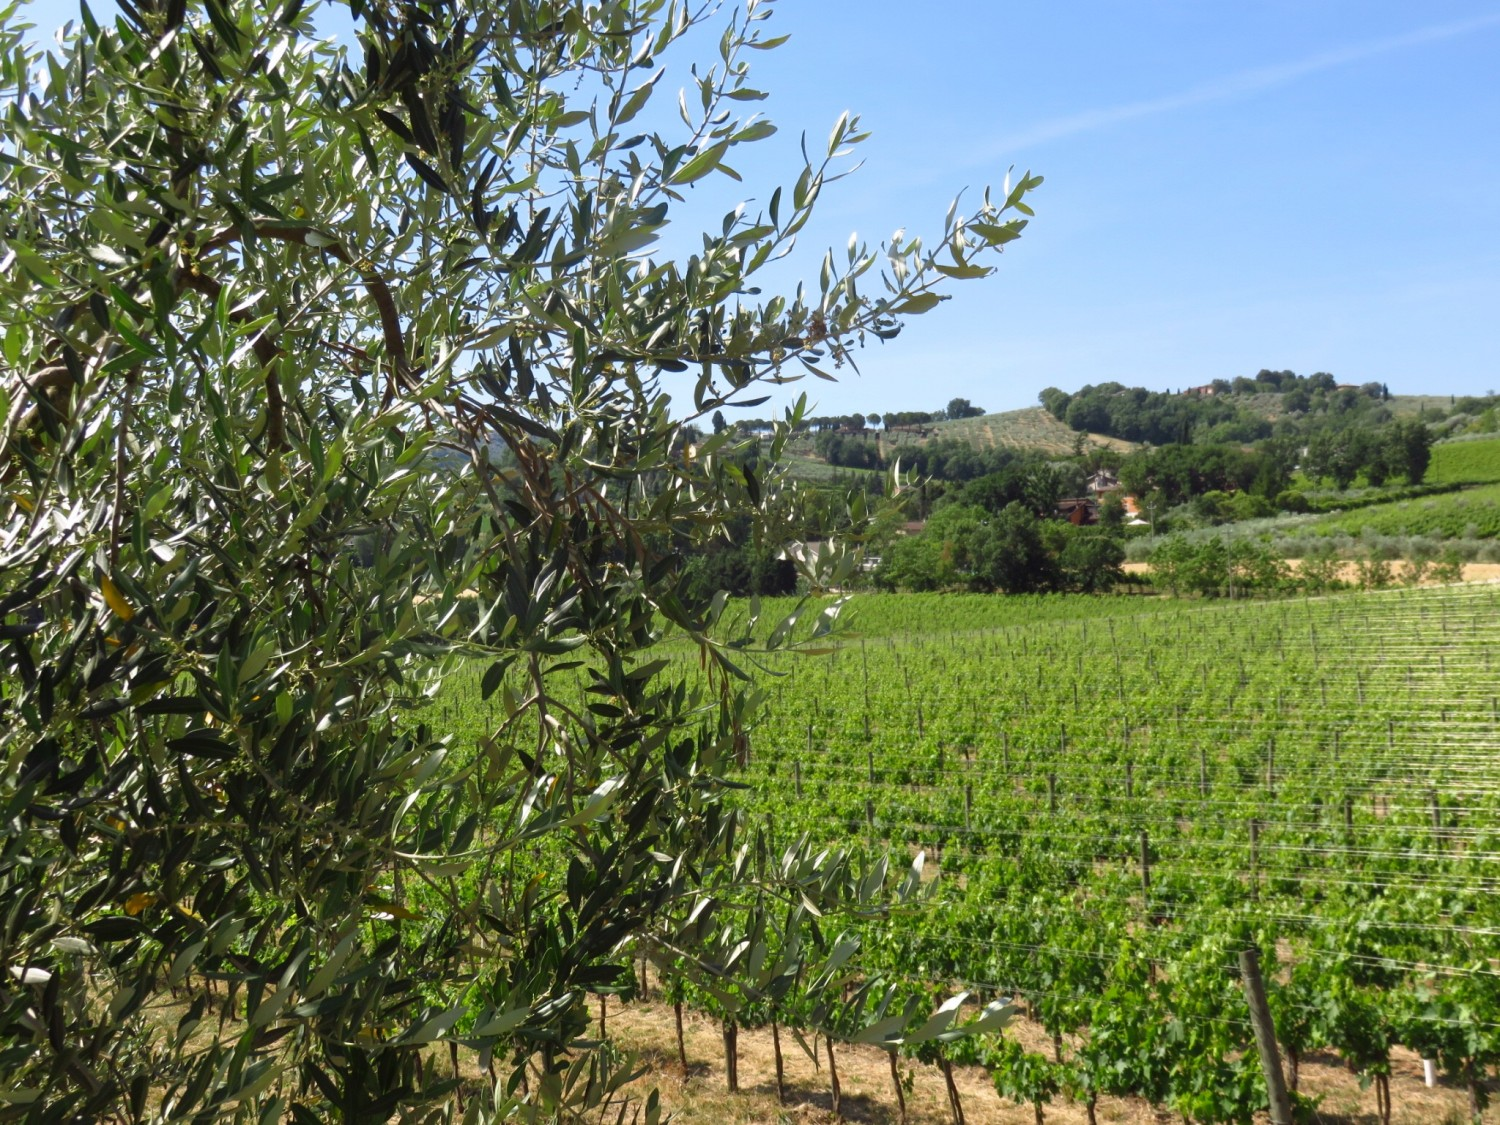 Caprai Winery - one of the best things to do in Umbria